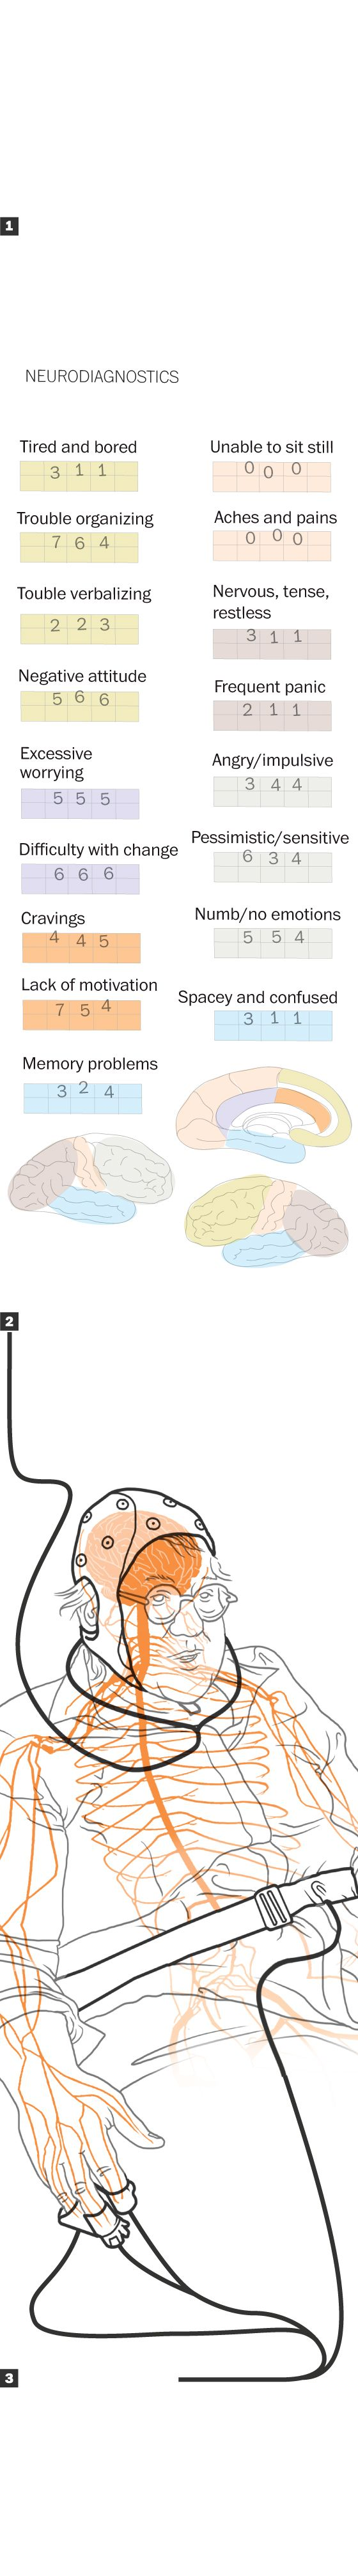 Brain hacking: The Mind's Biology | The Washington Post